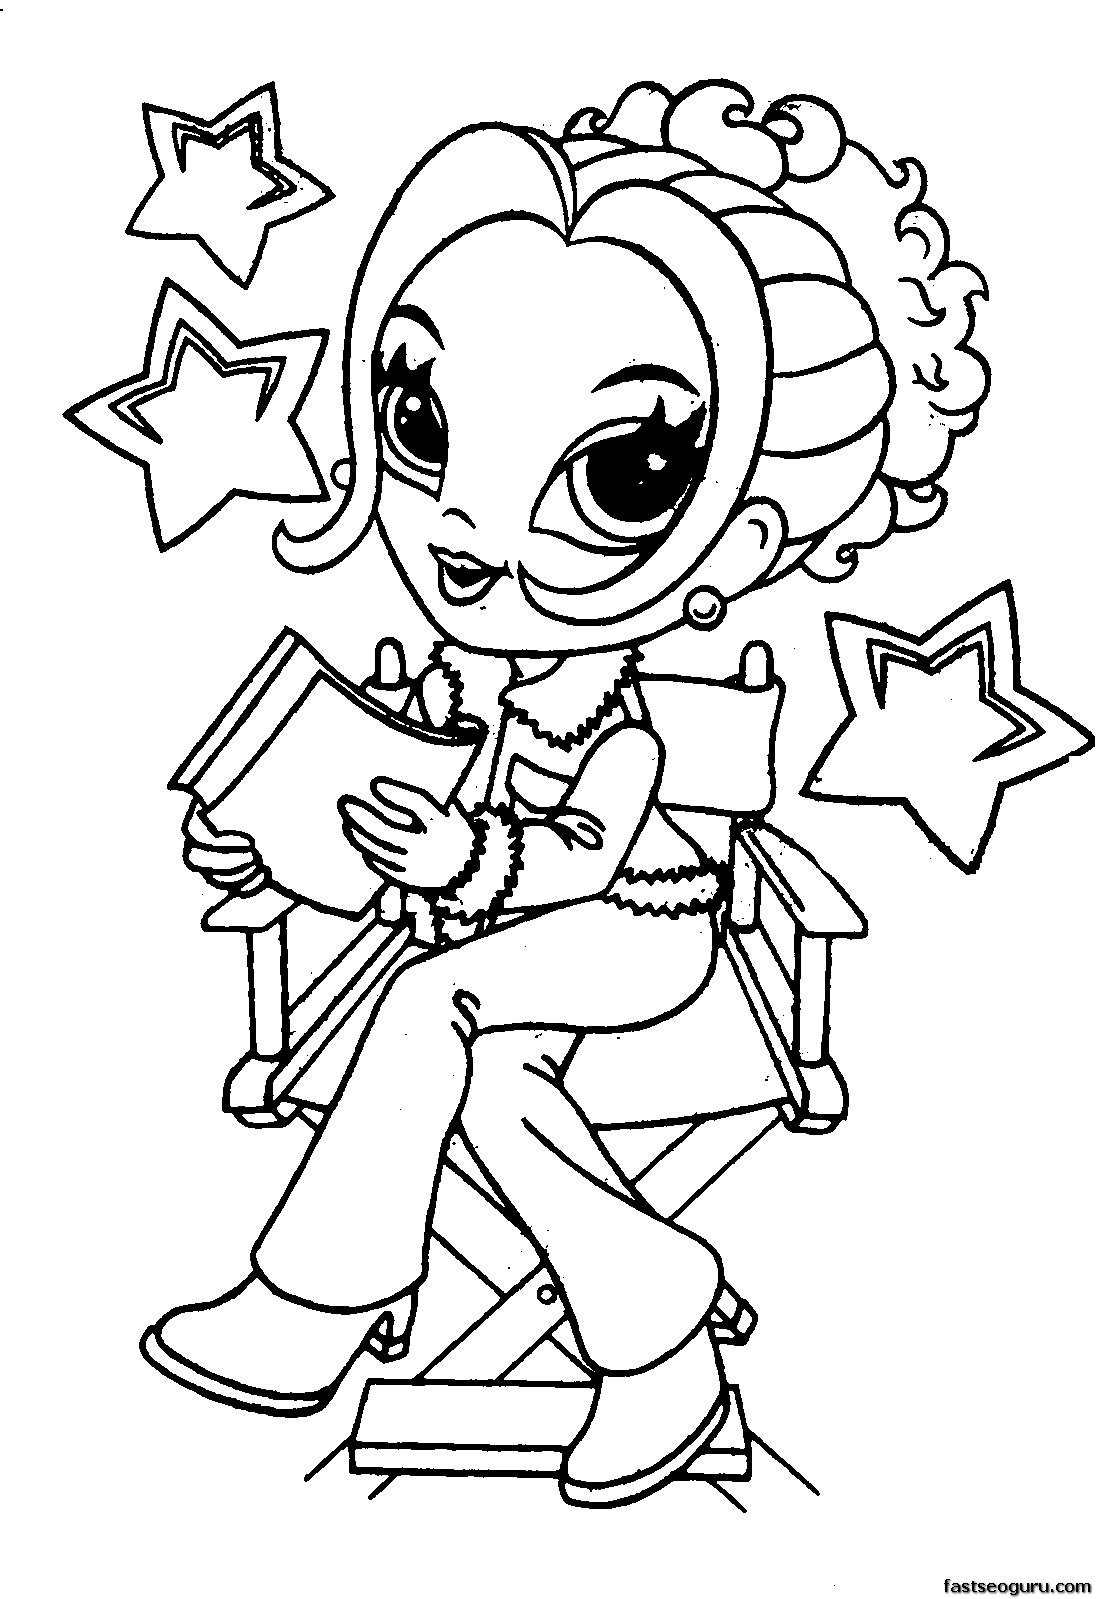 Cute girl coloring pages to download and print for free for Free printable coloring pages for girls